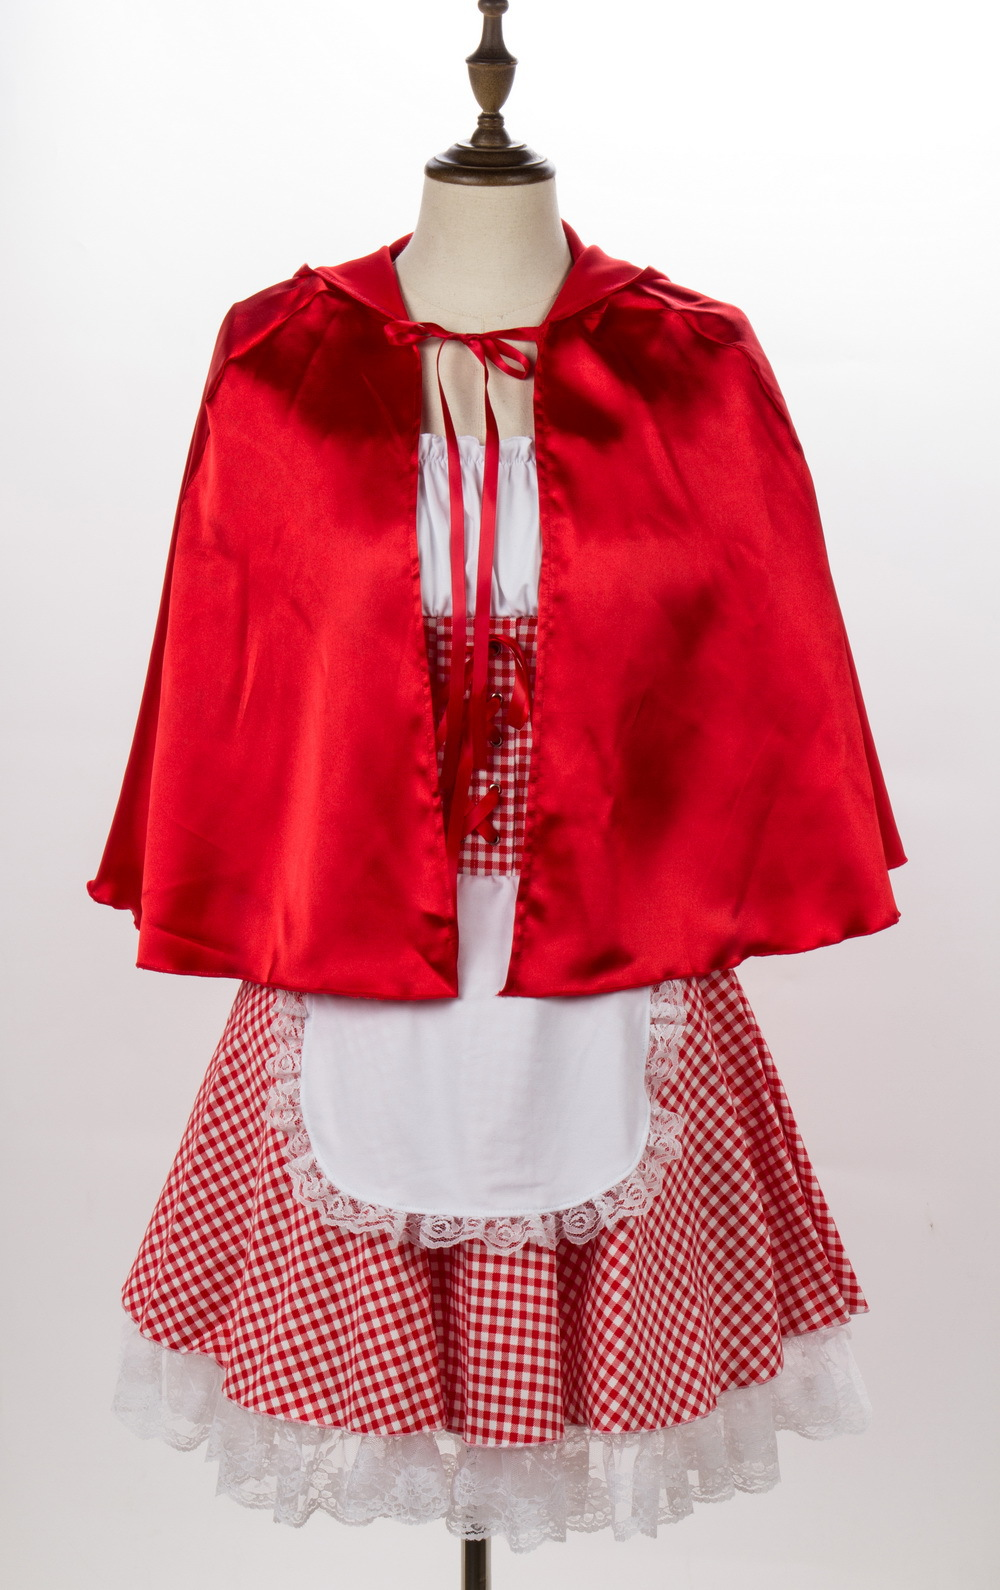 Women Copaly Dress Suit Plaid with Lace Decoration for Halloween Beer Festival  red_S